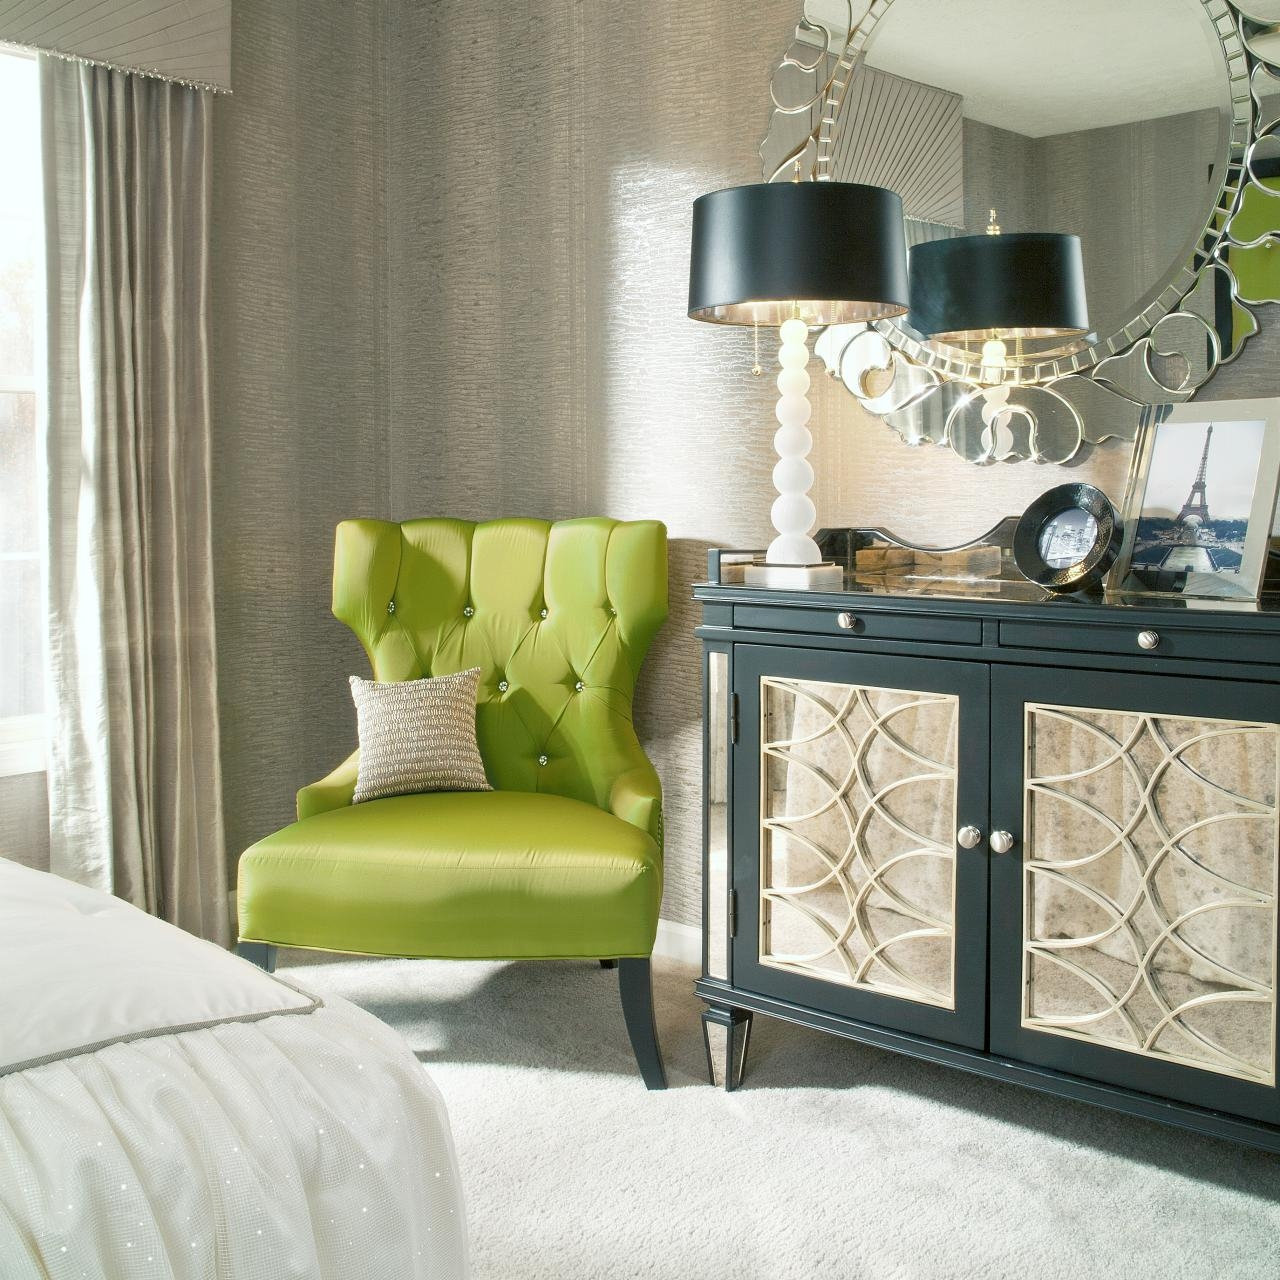 Cool Lime Green Accent Chair Homesfeed Lime Green Accent Chair - Richad Studio